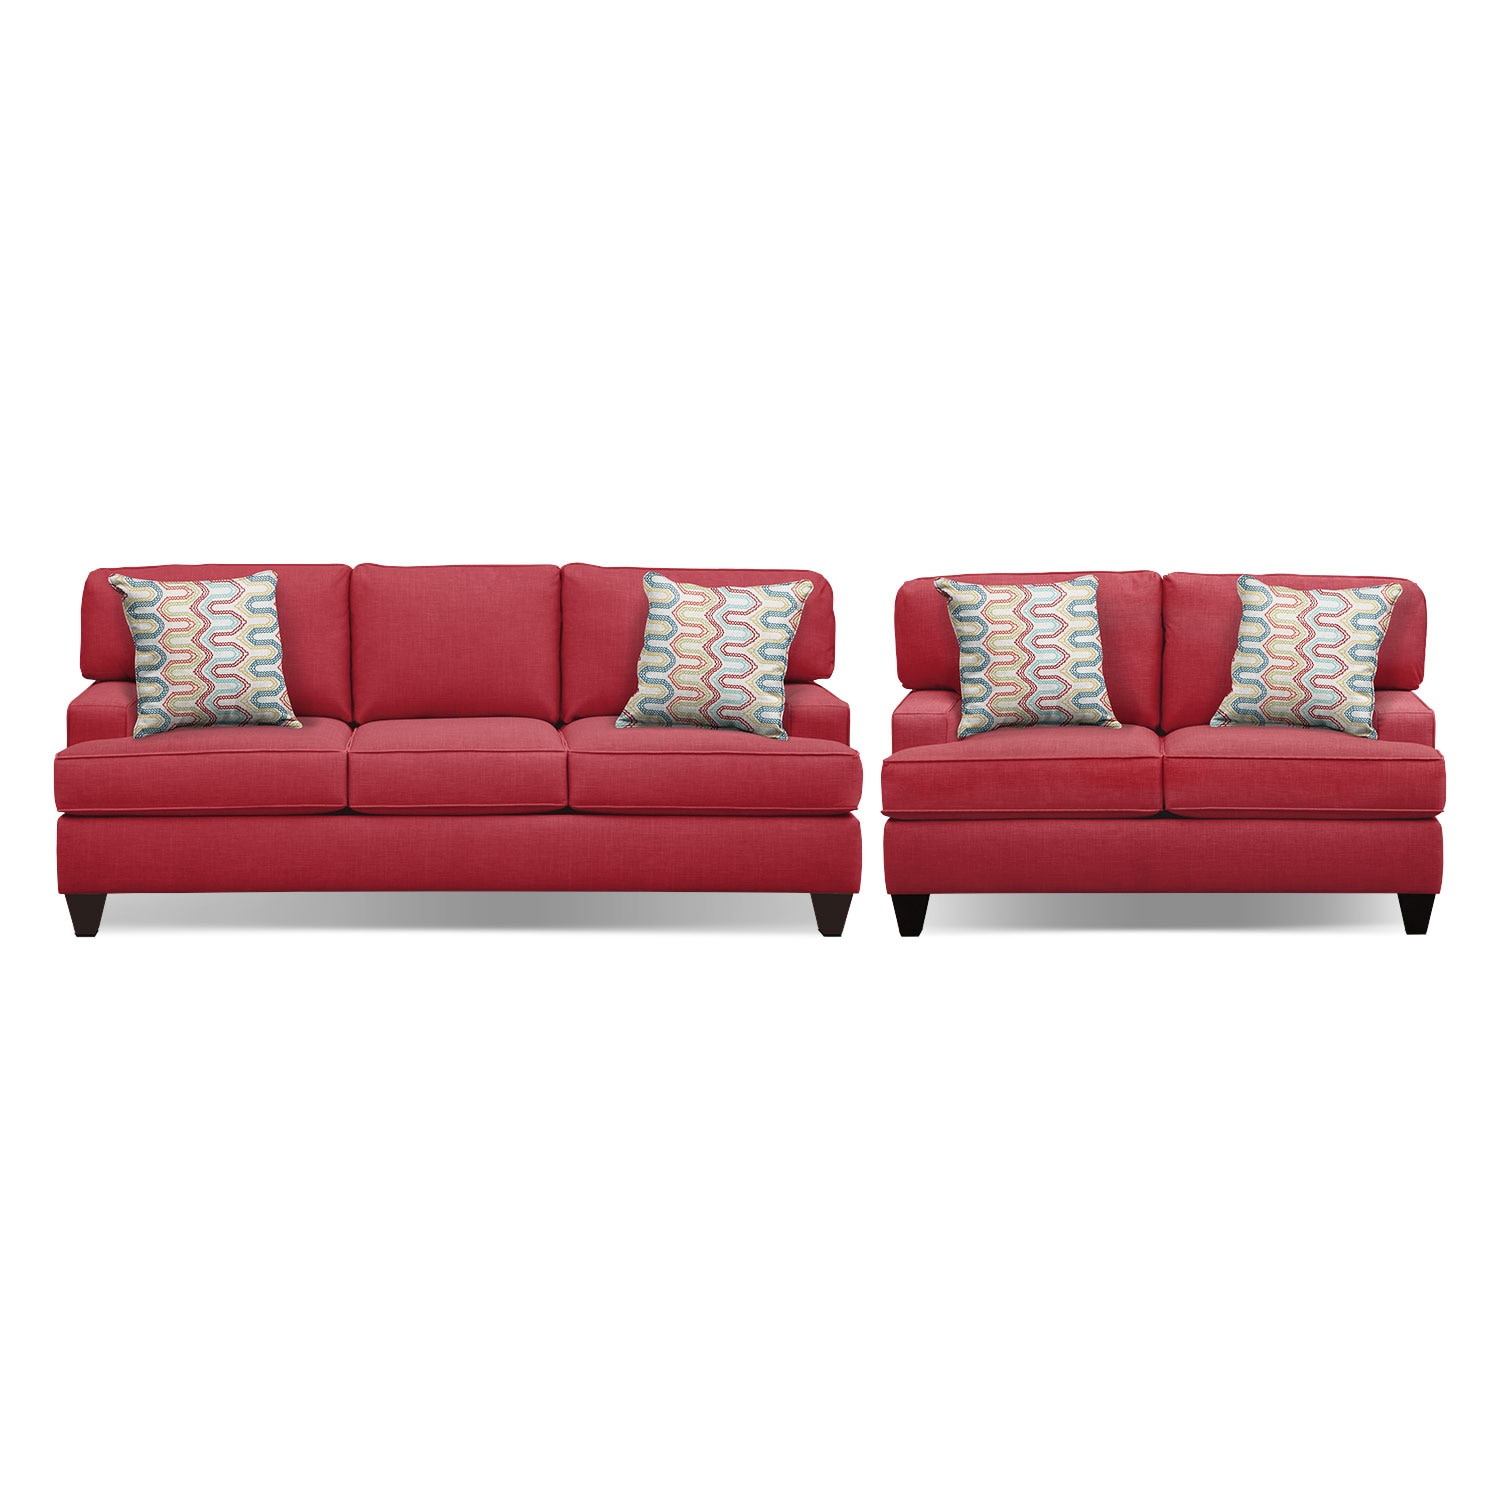 "Conner Red 87"" Sofa and 63"" Sofa Set"